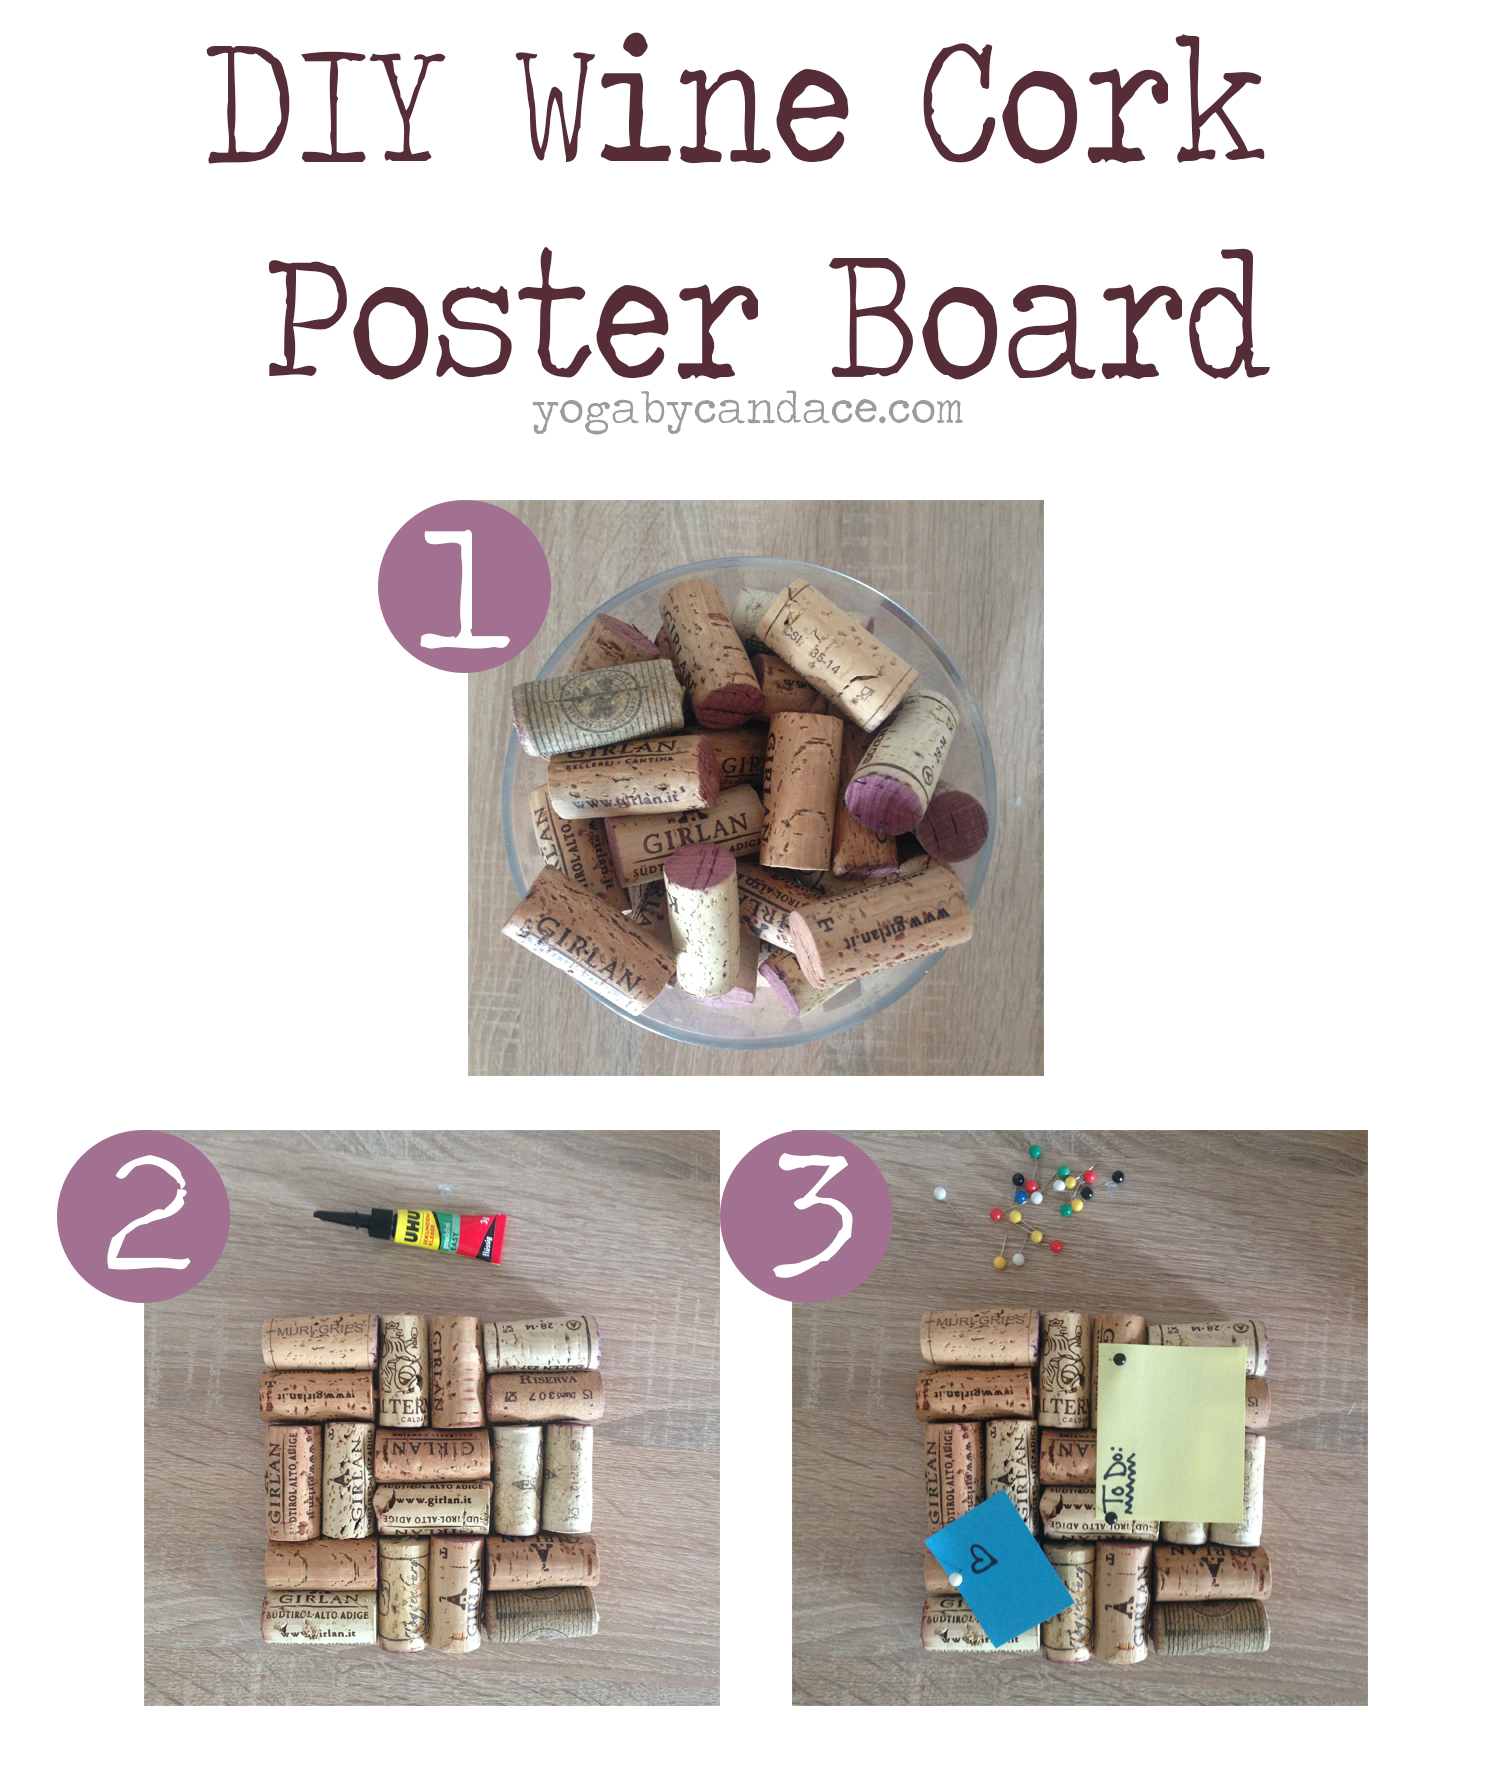 Pin now, make later - DIY Wine Cork Poster Board